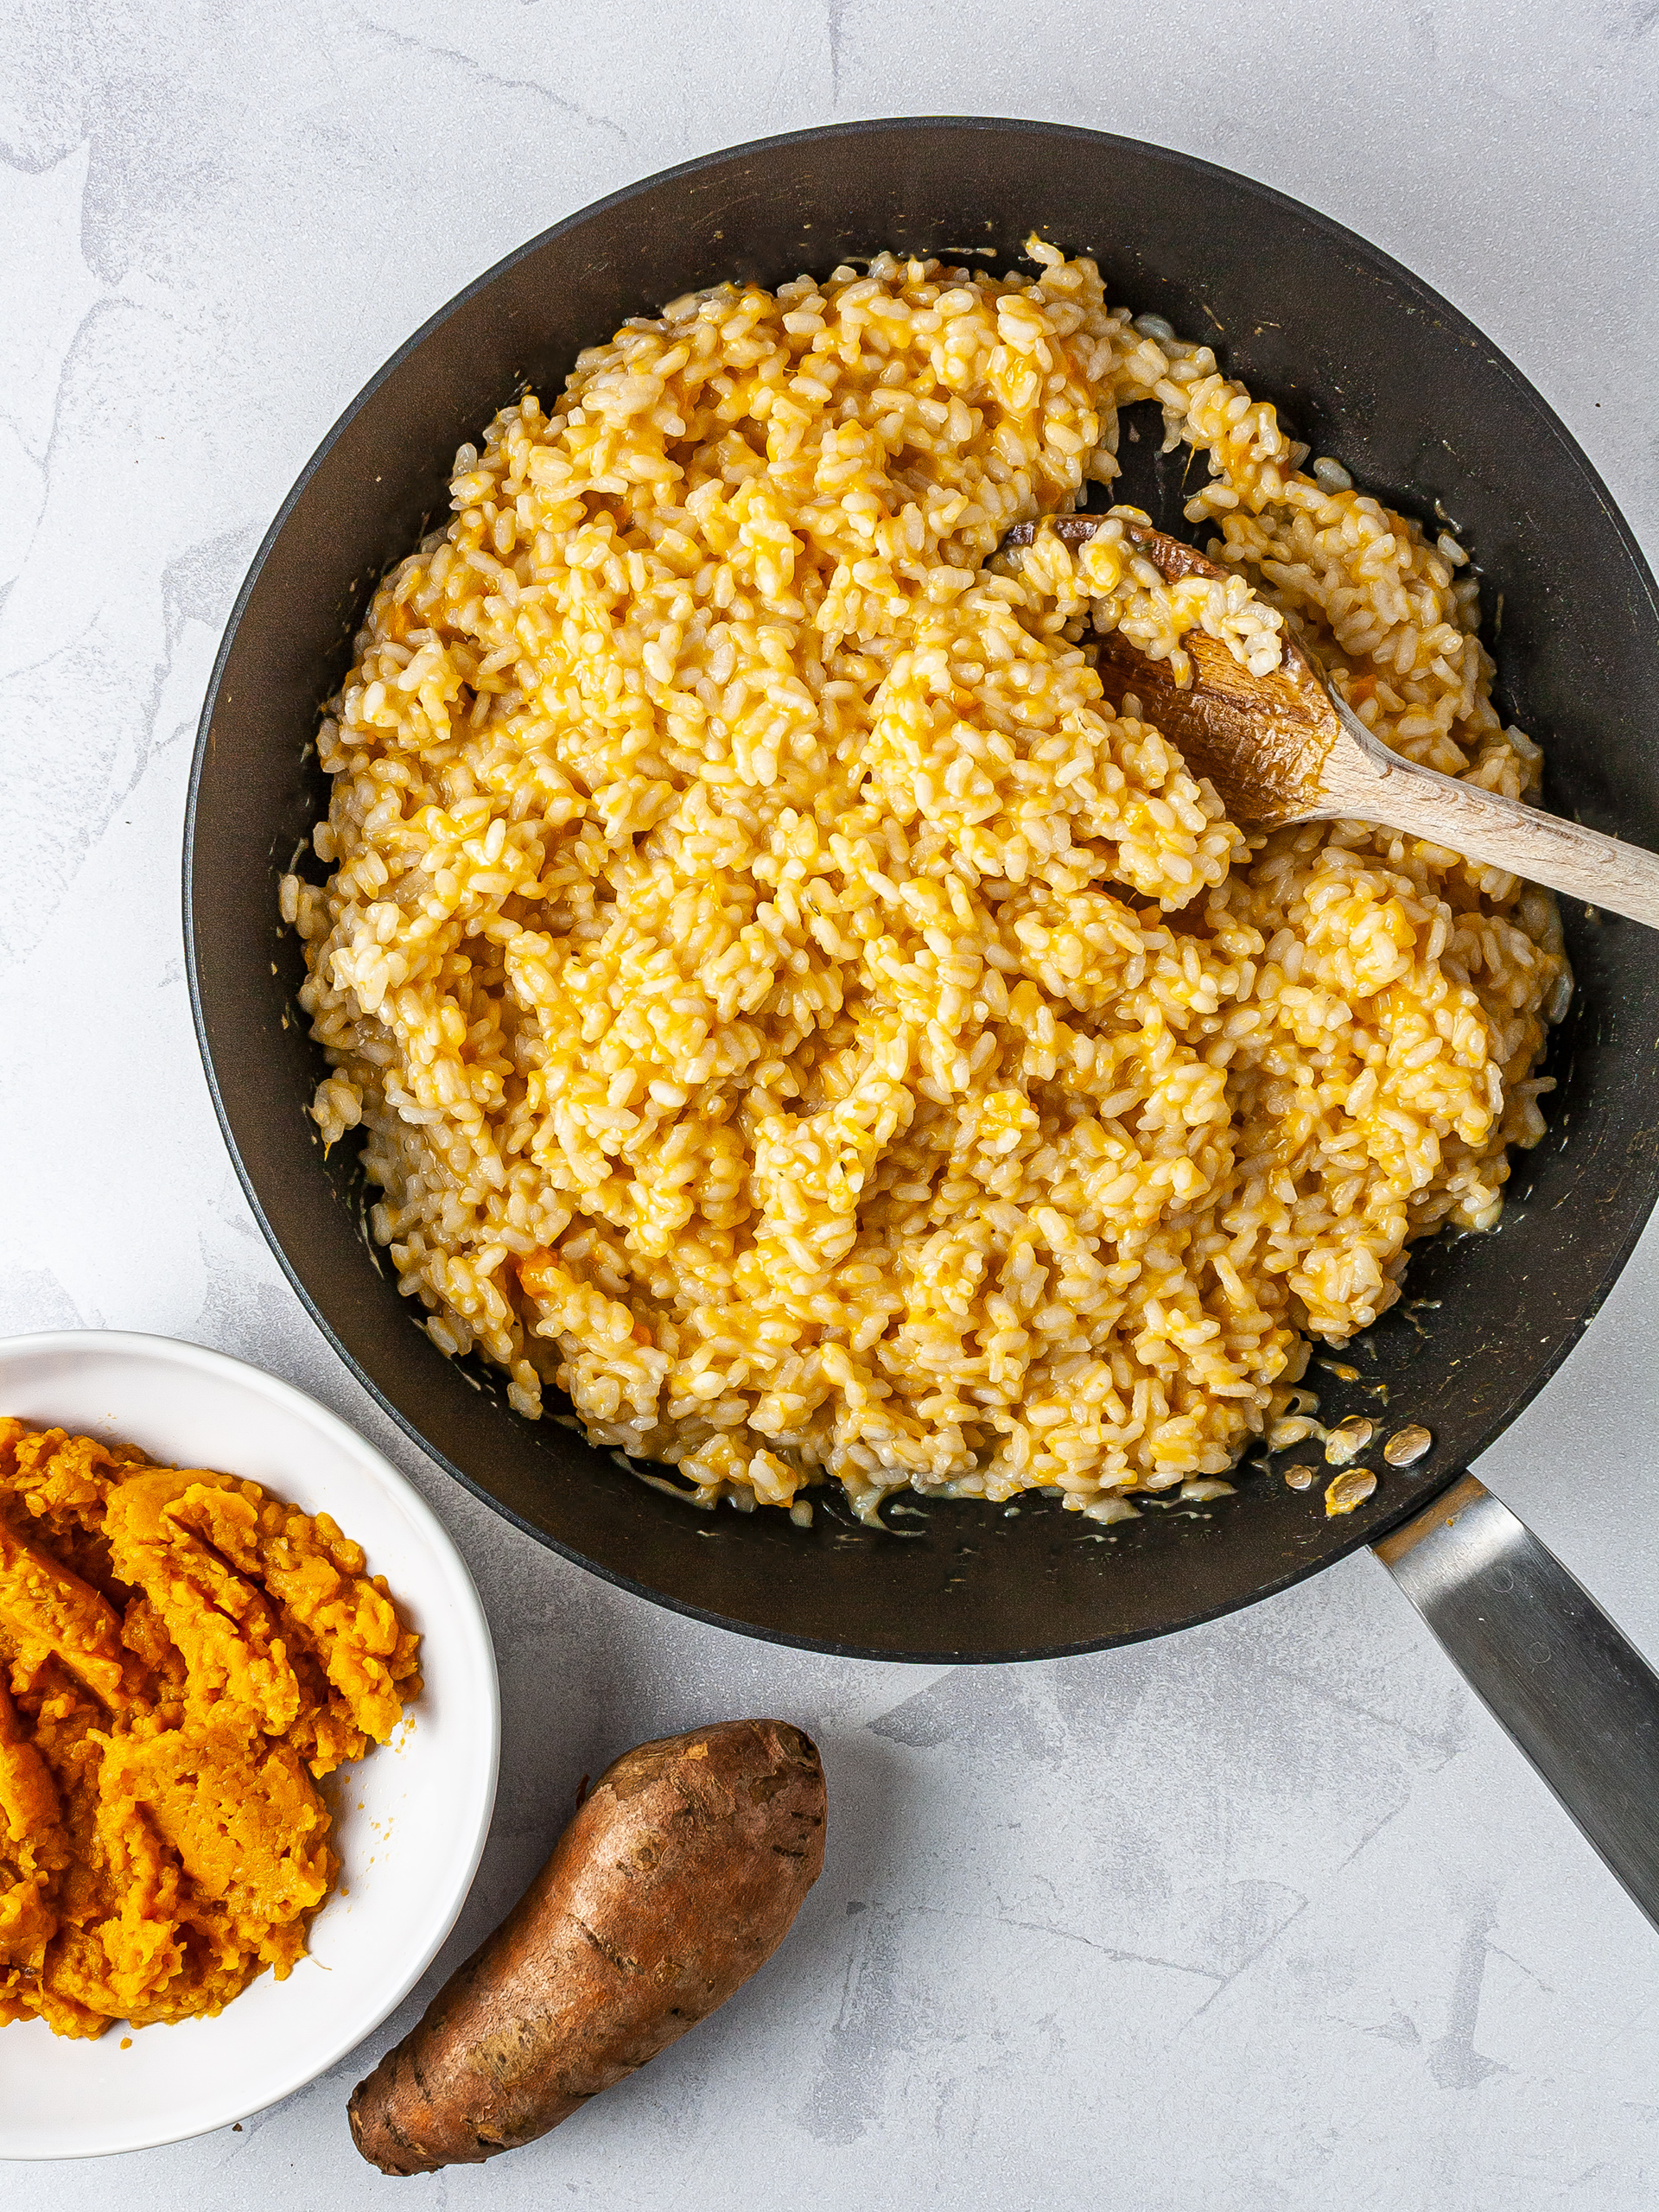 Mashed sweet potato added to the risotto rice.